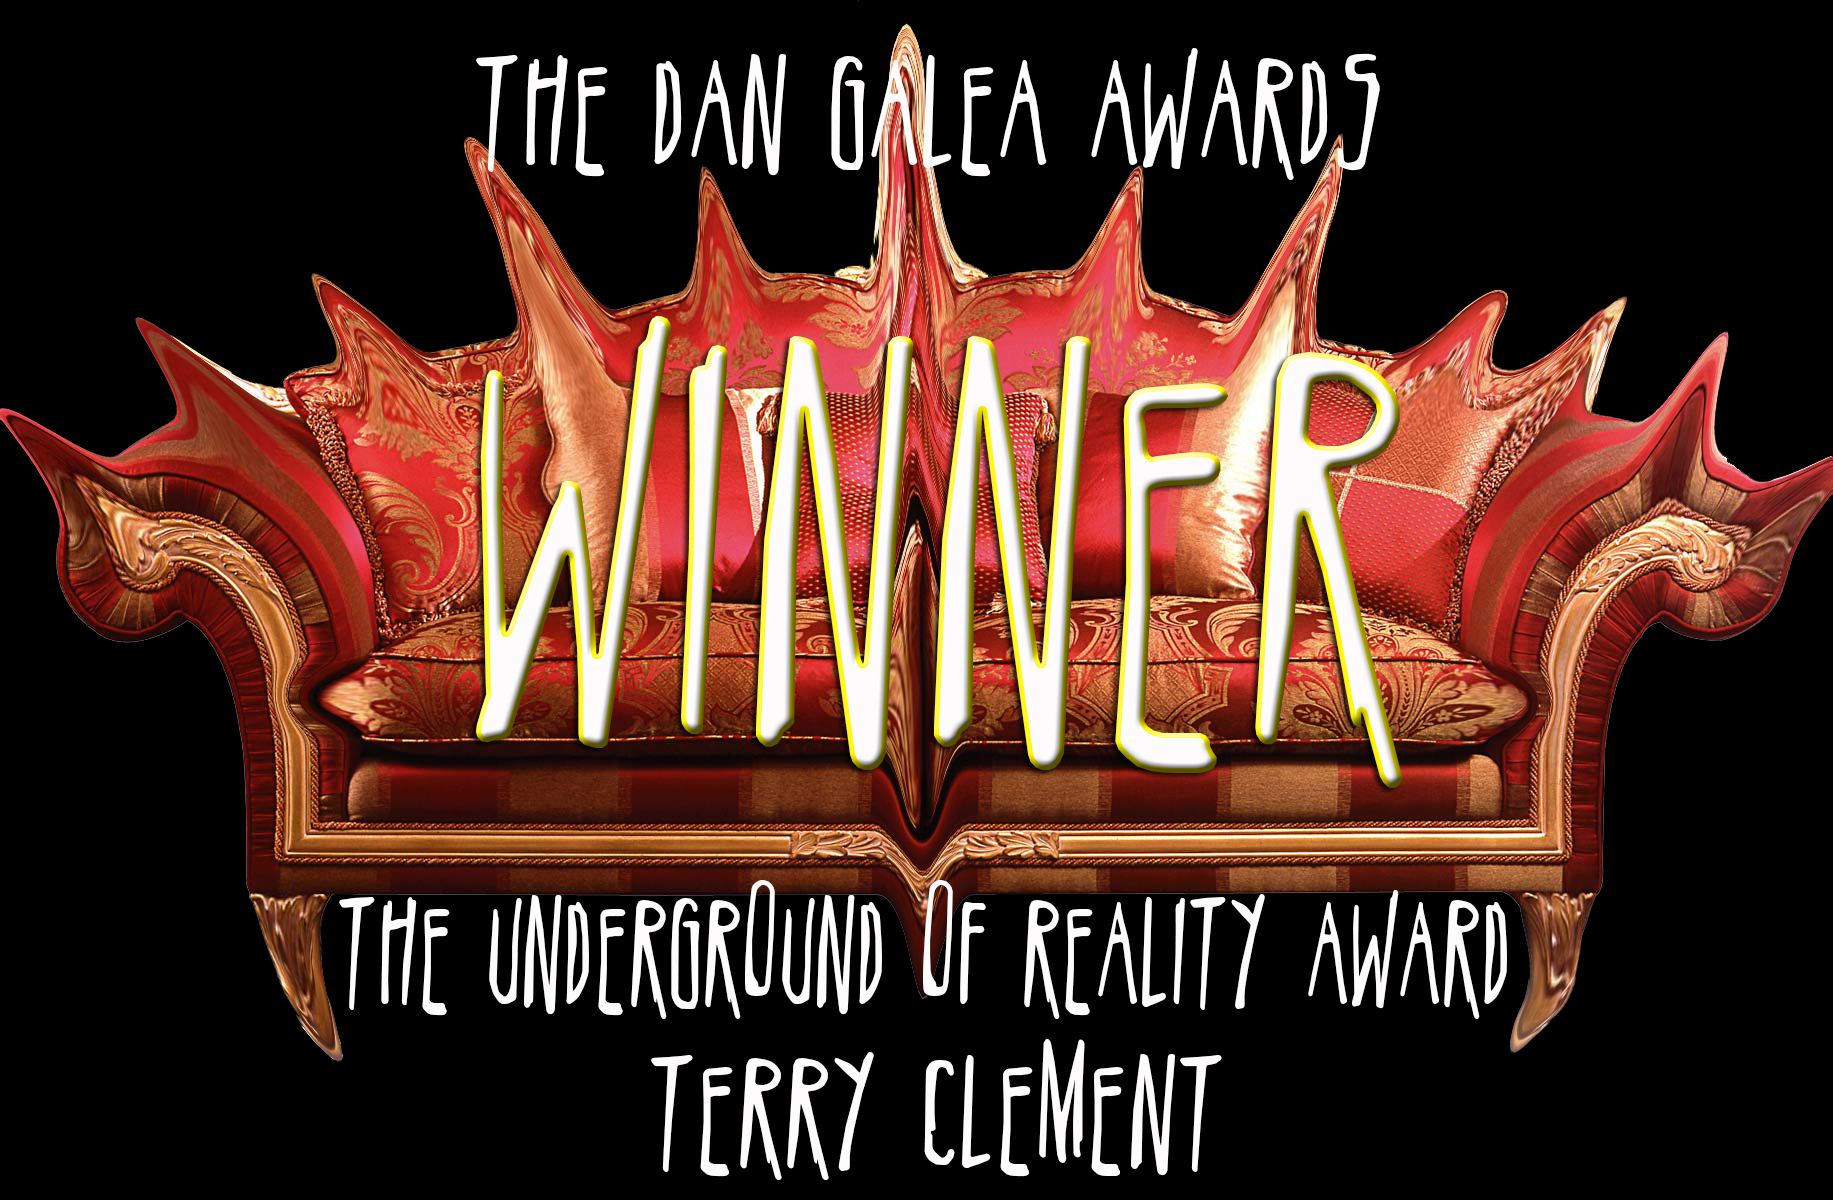 DGawards Terry Clement.jpg